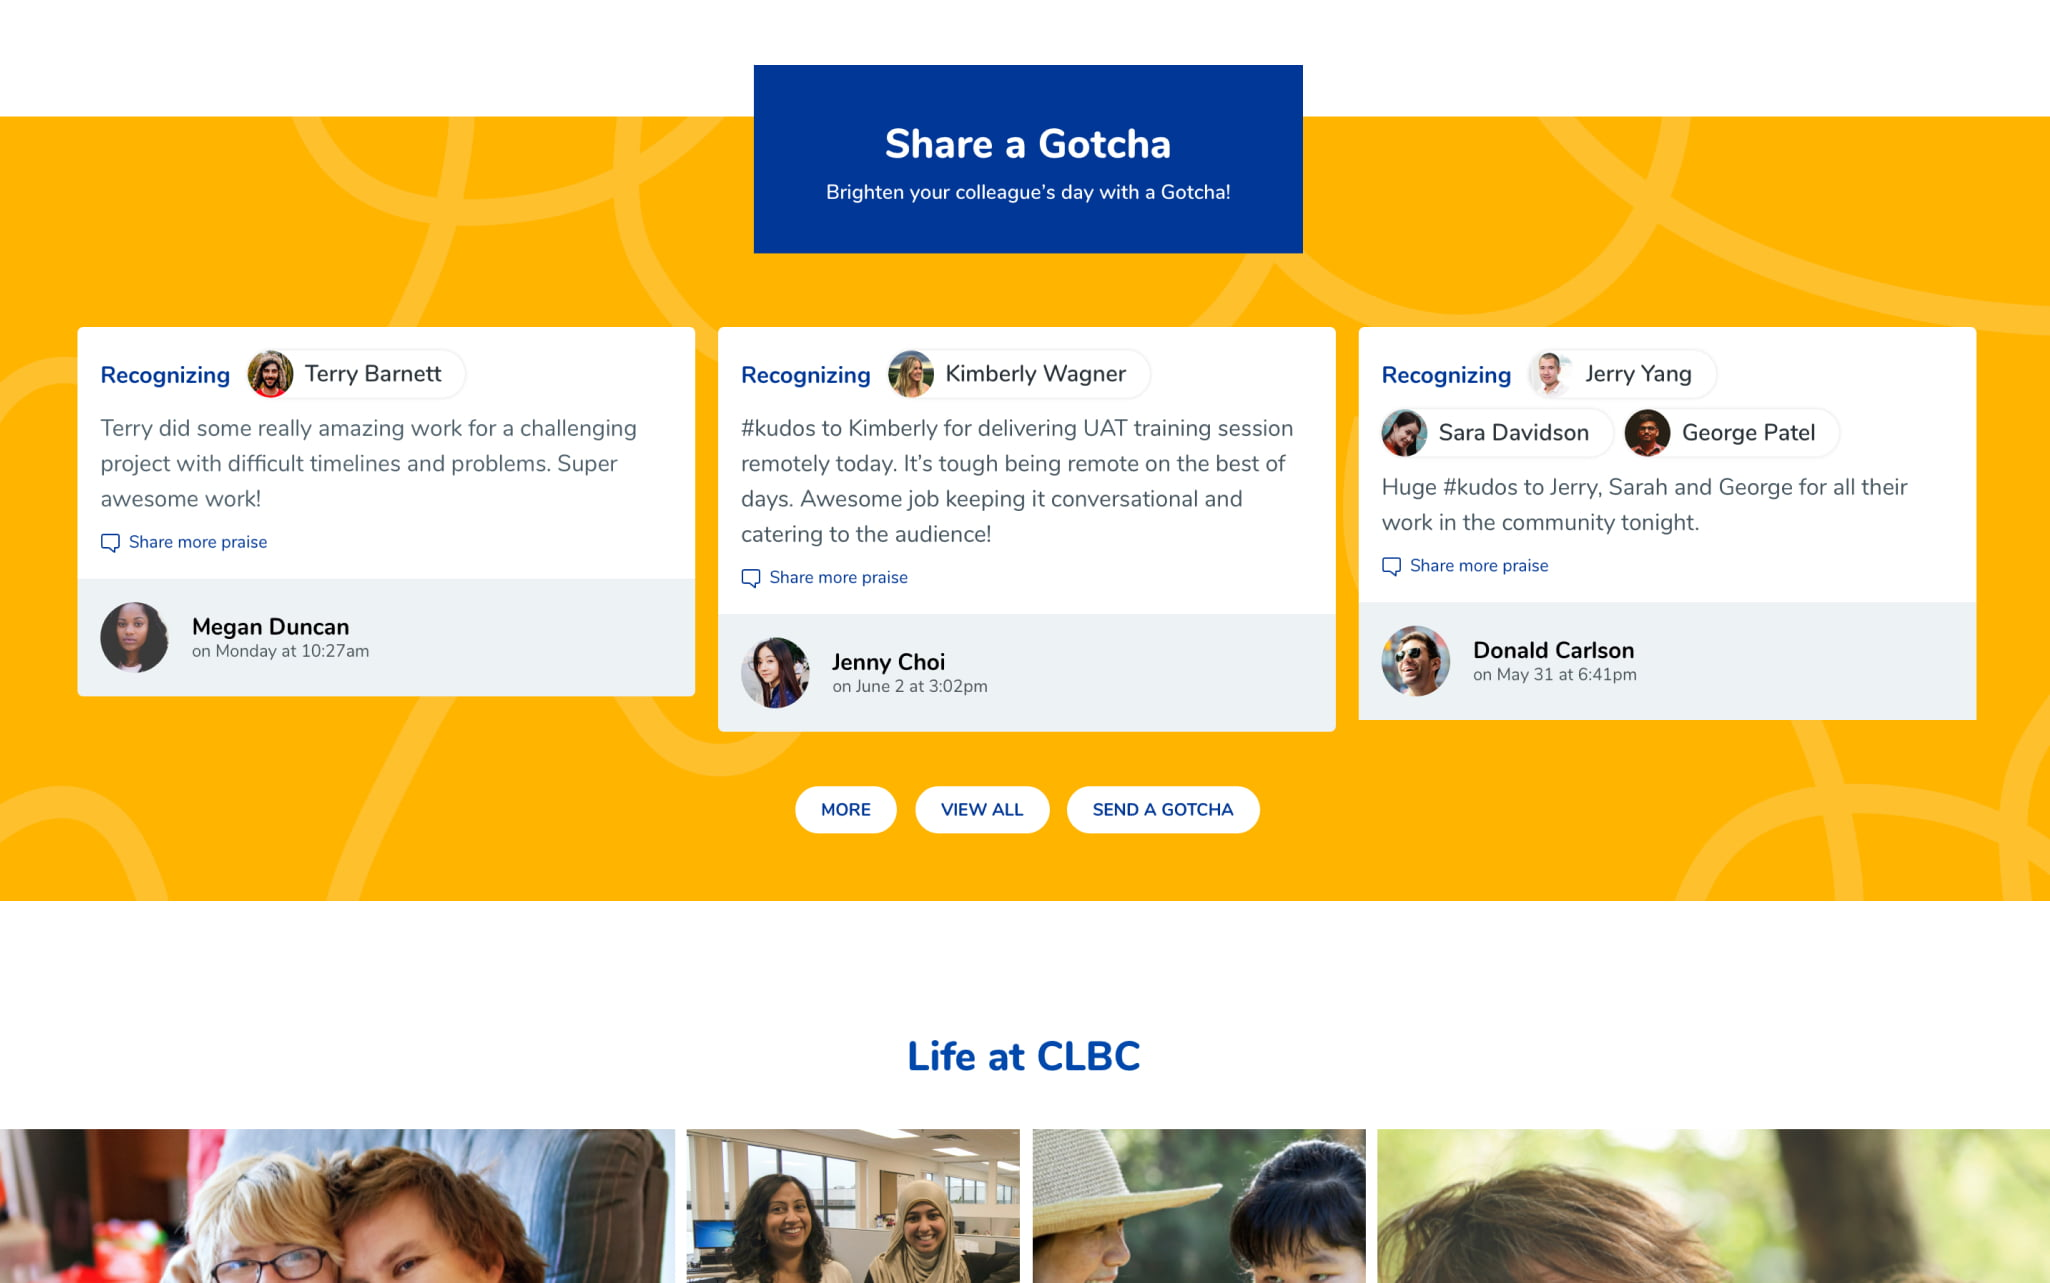 Desktop mock-up of the 'share a gotcha' panel on the home page on CLBC's intranet.